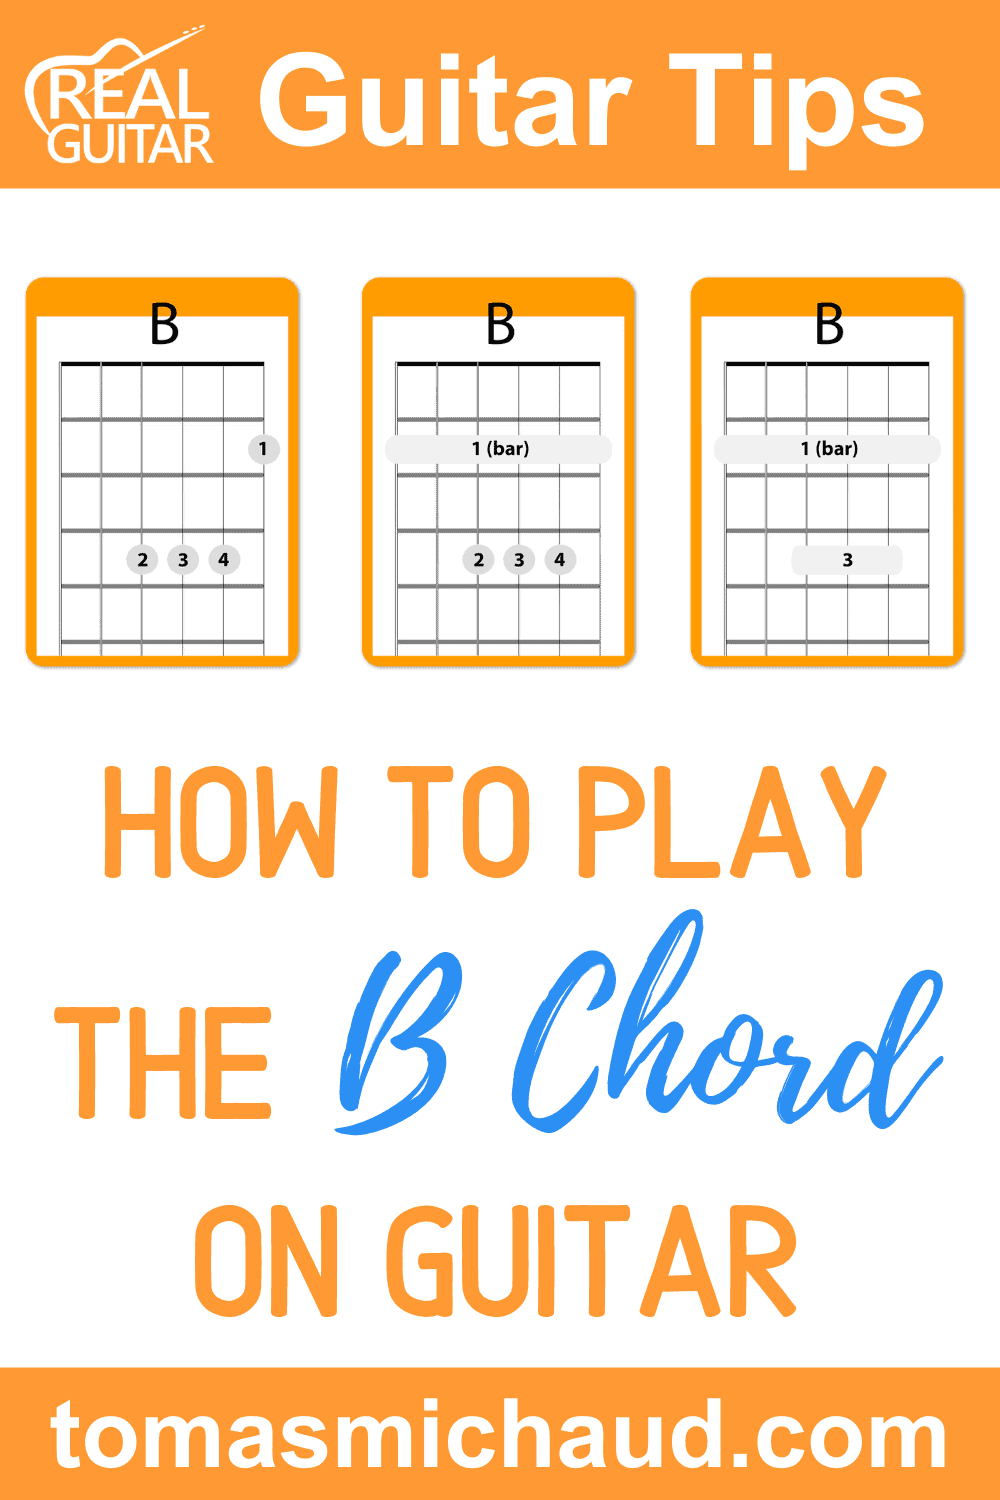 How to Play the B Chord on Guitar